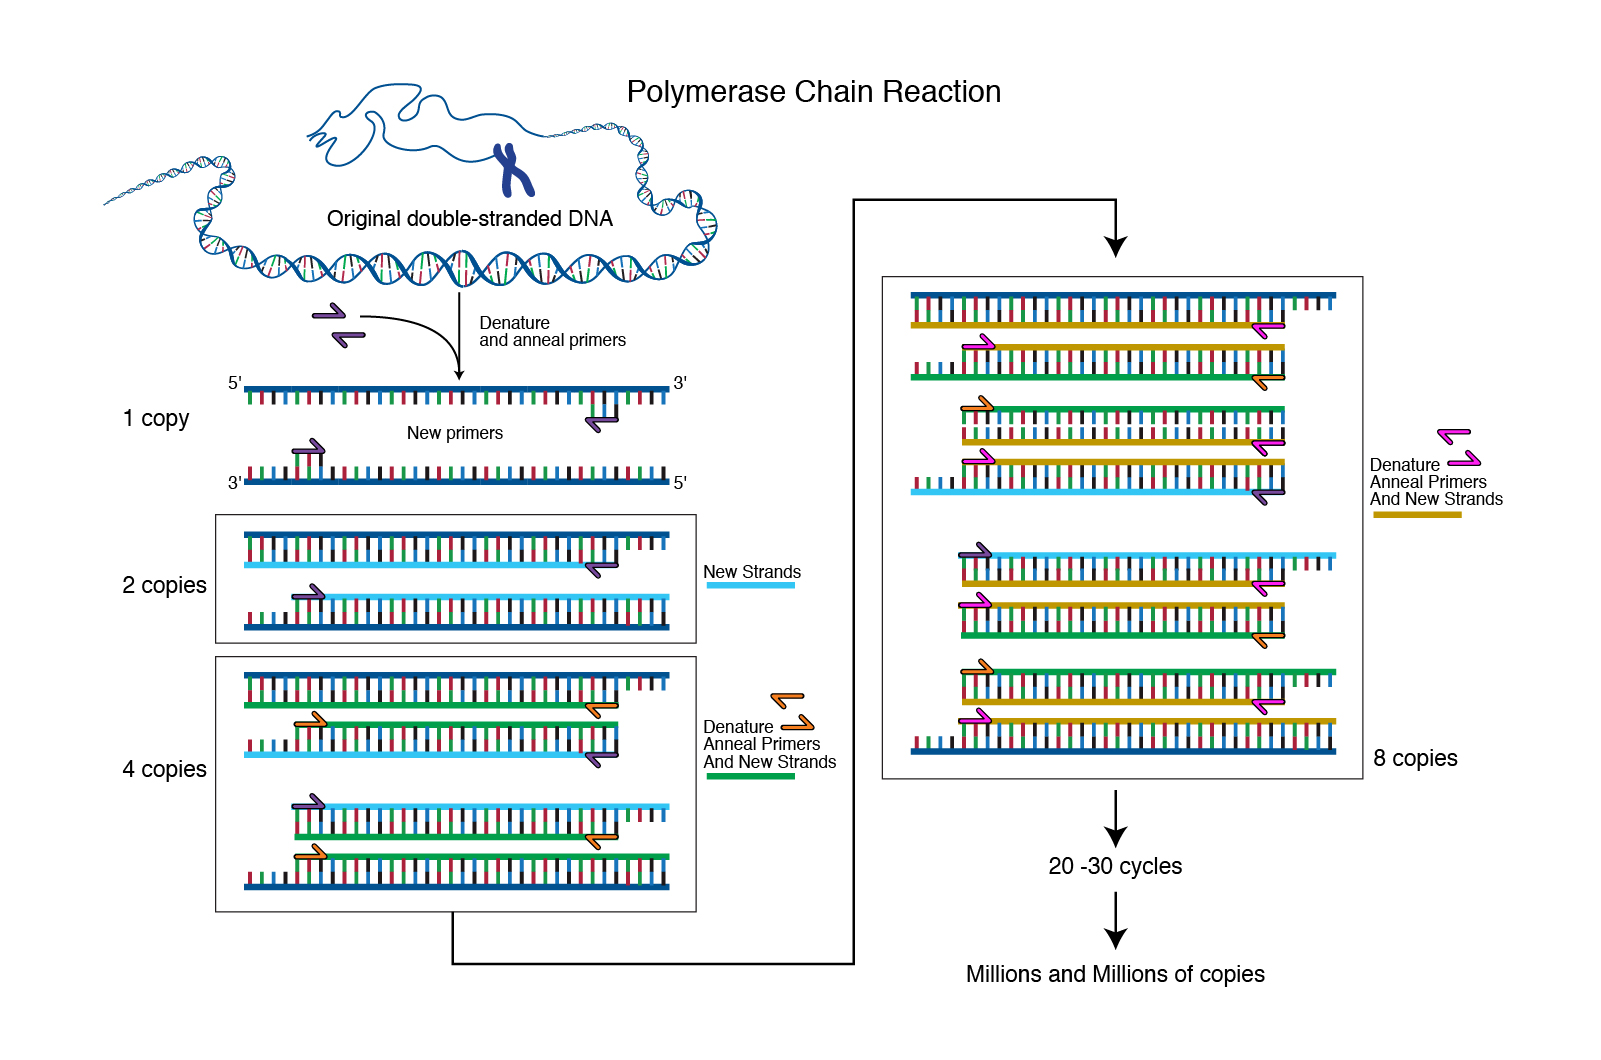 Beaches] The purpose of pcr (polymerase chain reaction) is to